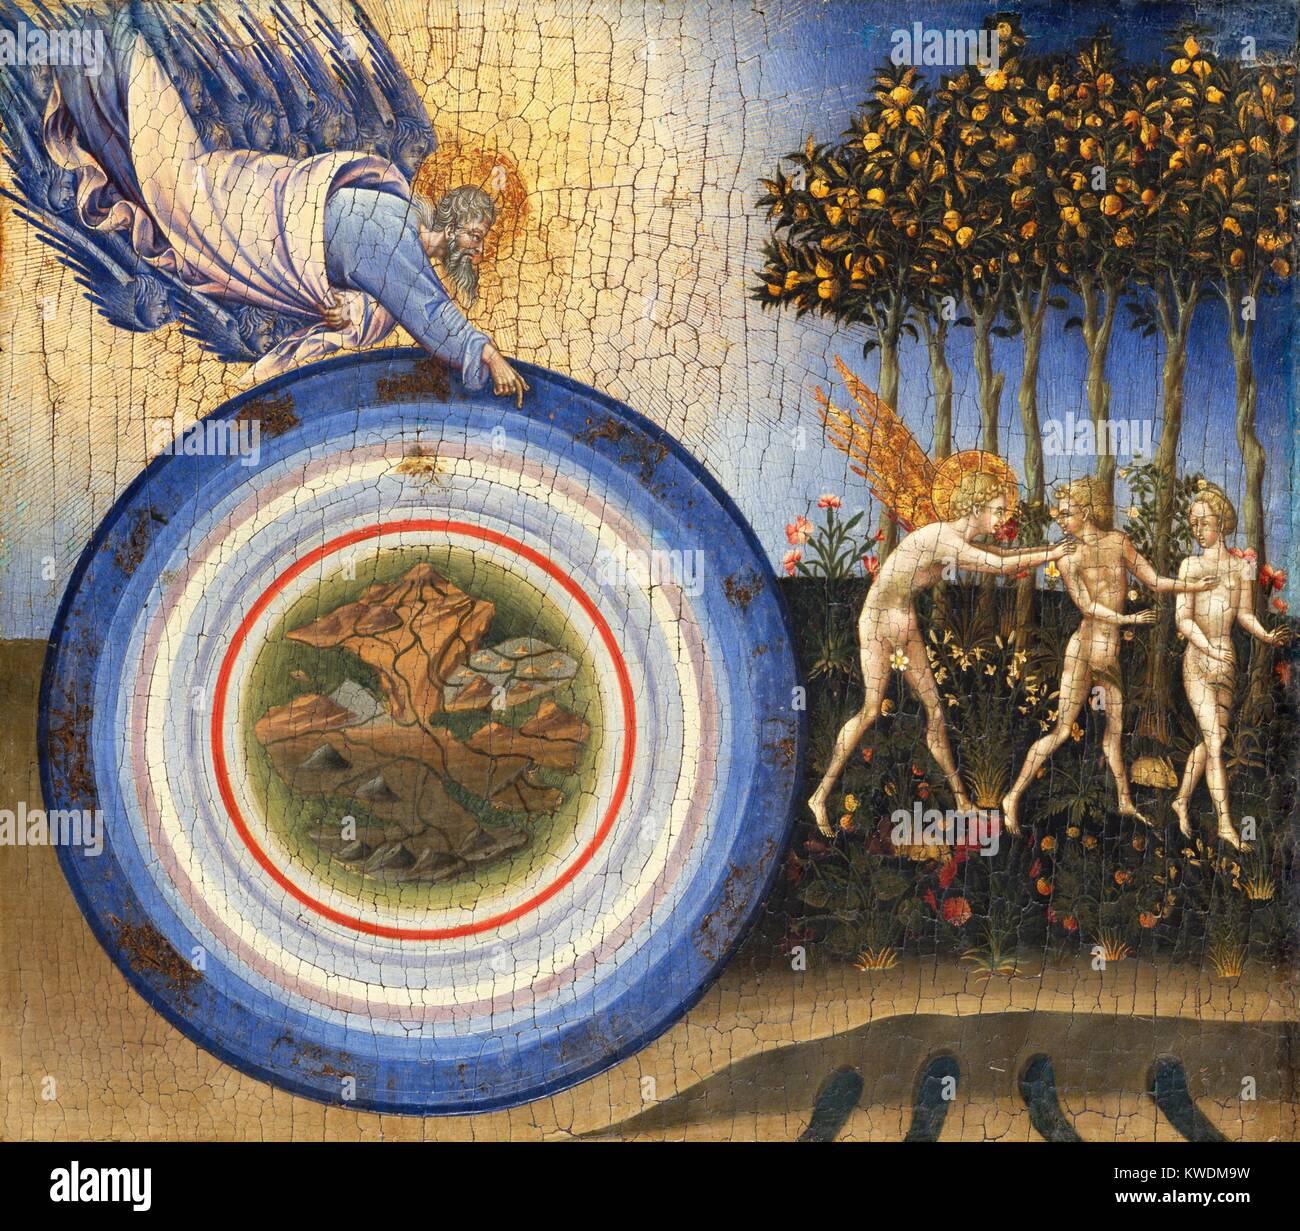 CREATION OF THE WORLD AND EXPULSION FROM PARADISE, by Giovanni di Paolo, 1445, Renaissance painting. The universe Stock Photo